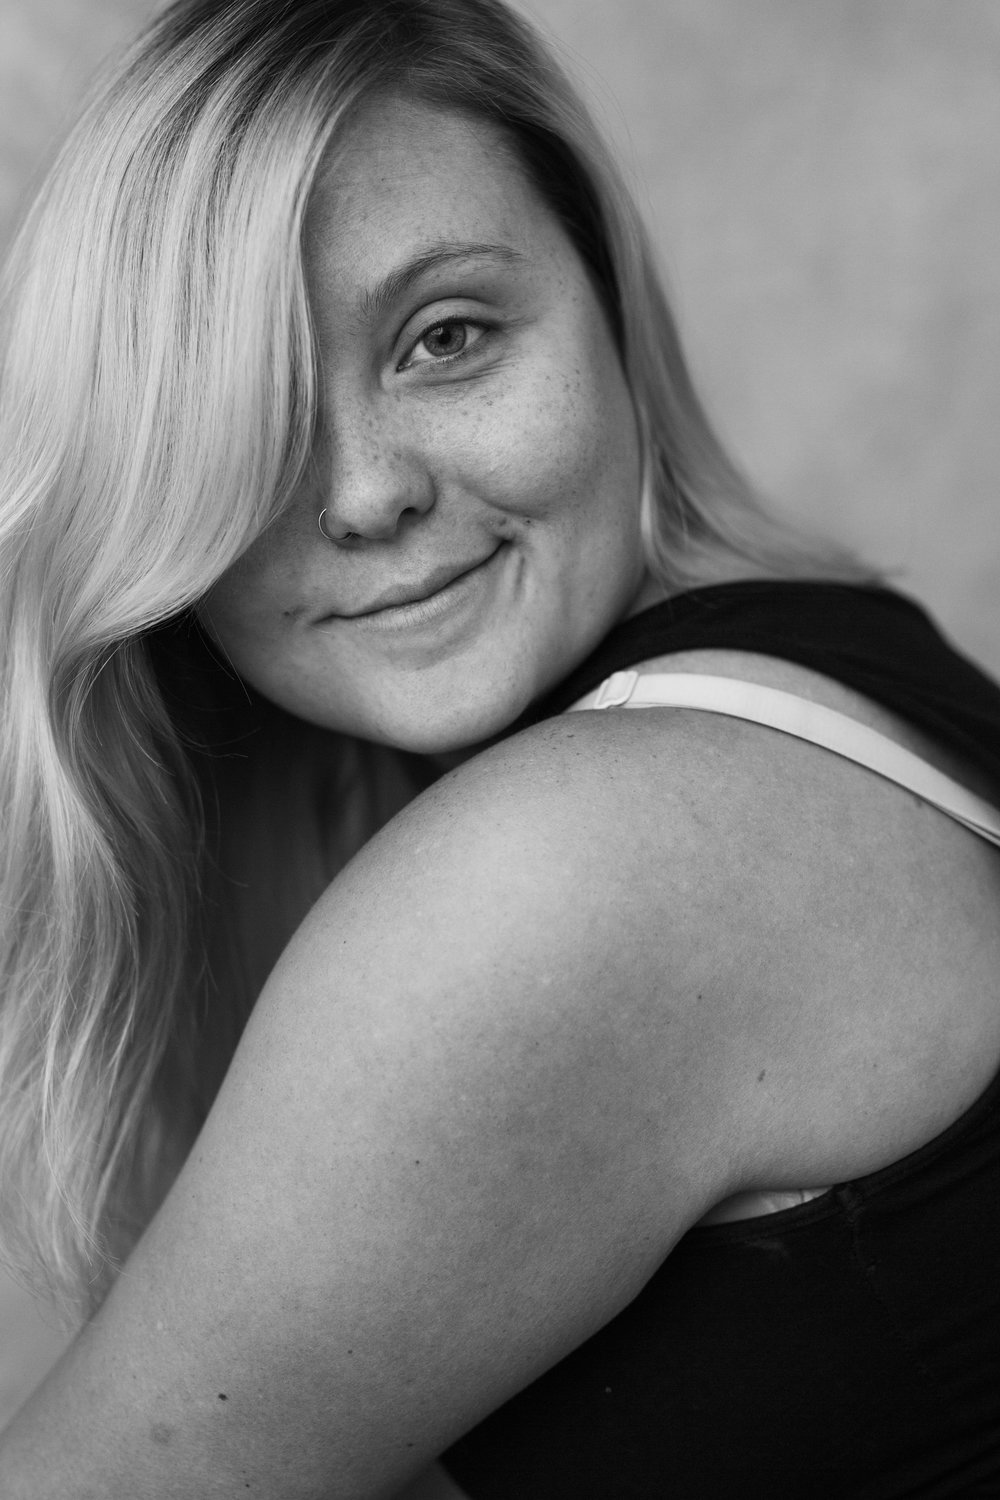 Amy challenged me and I felt WEIRD and also, surprisingly and refreshingly confident, beautiful, and carefree. - Thank you Amy for capturing me in a new and different way, and helping me to see the beauty in my skin every time you take my picture. I'm grateful for you.